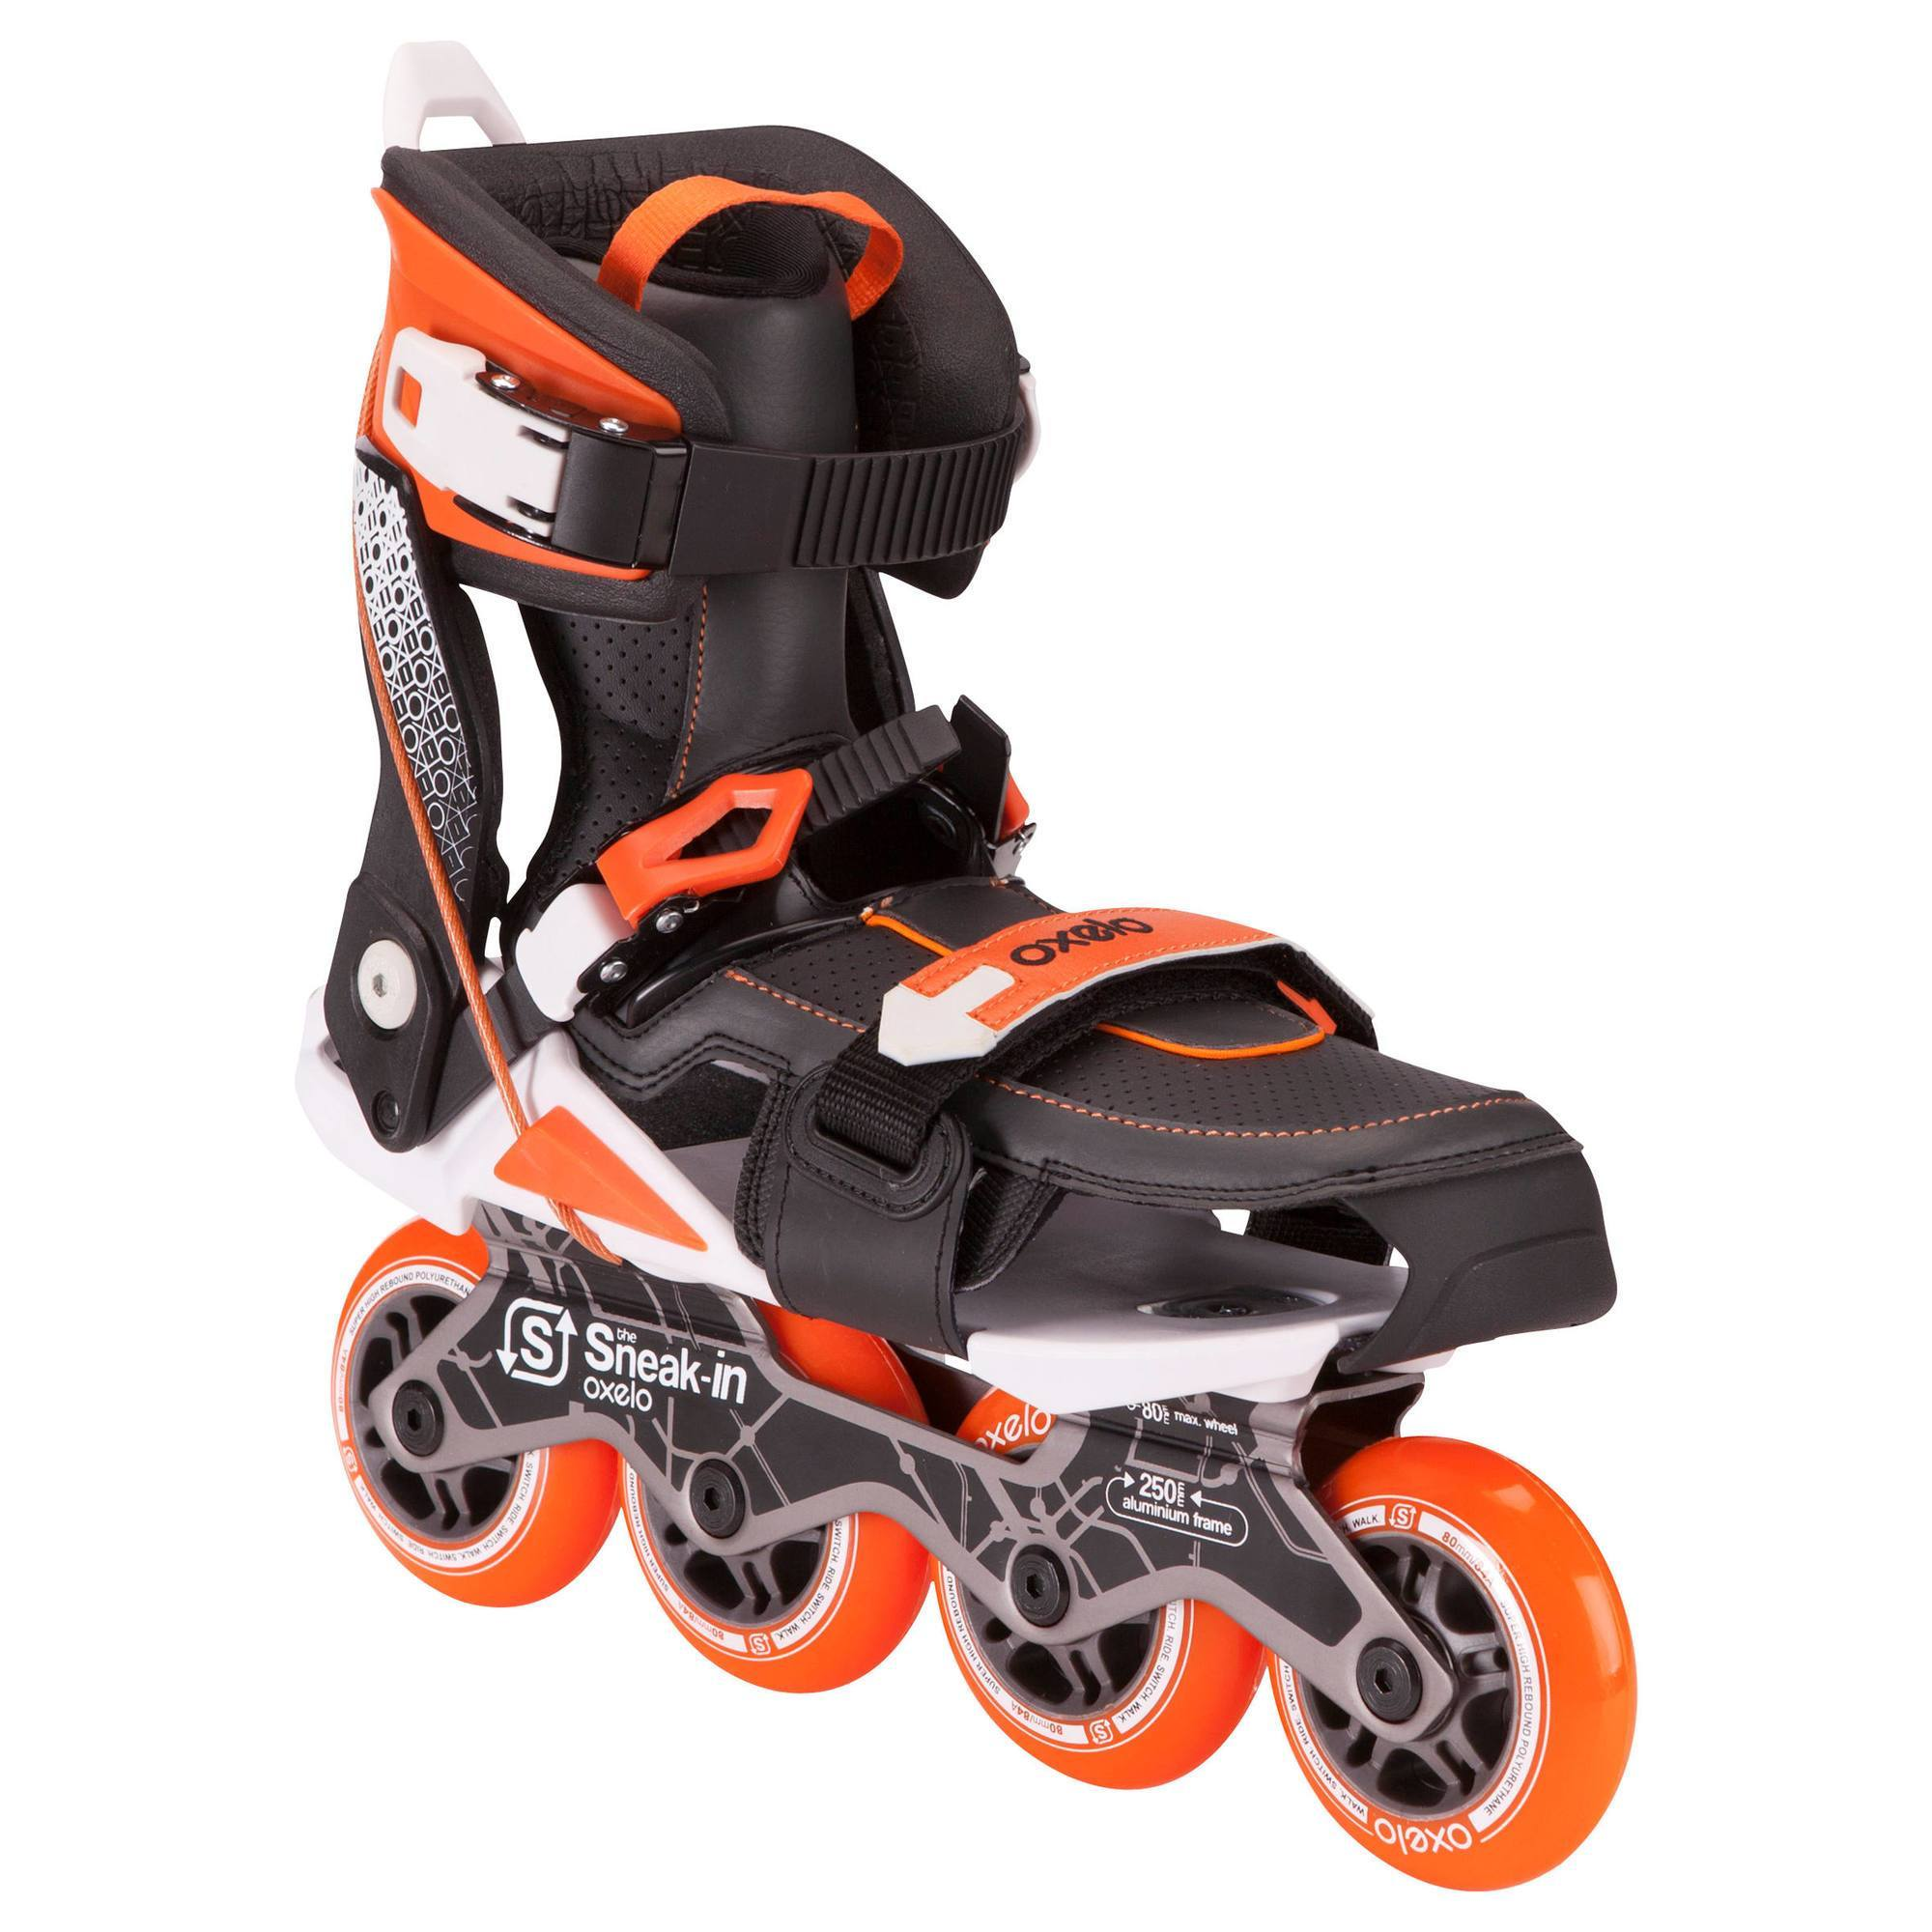 ROLLERS ADAPTABLES AUX CHAUSSURES OXELO SNEAK IN